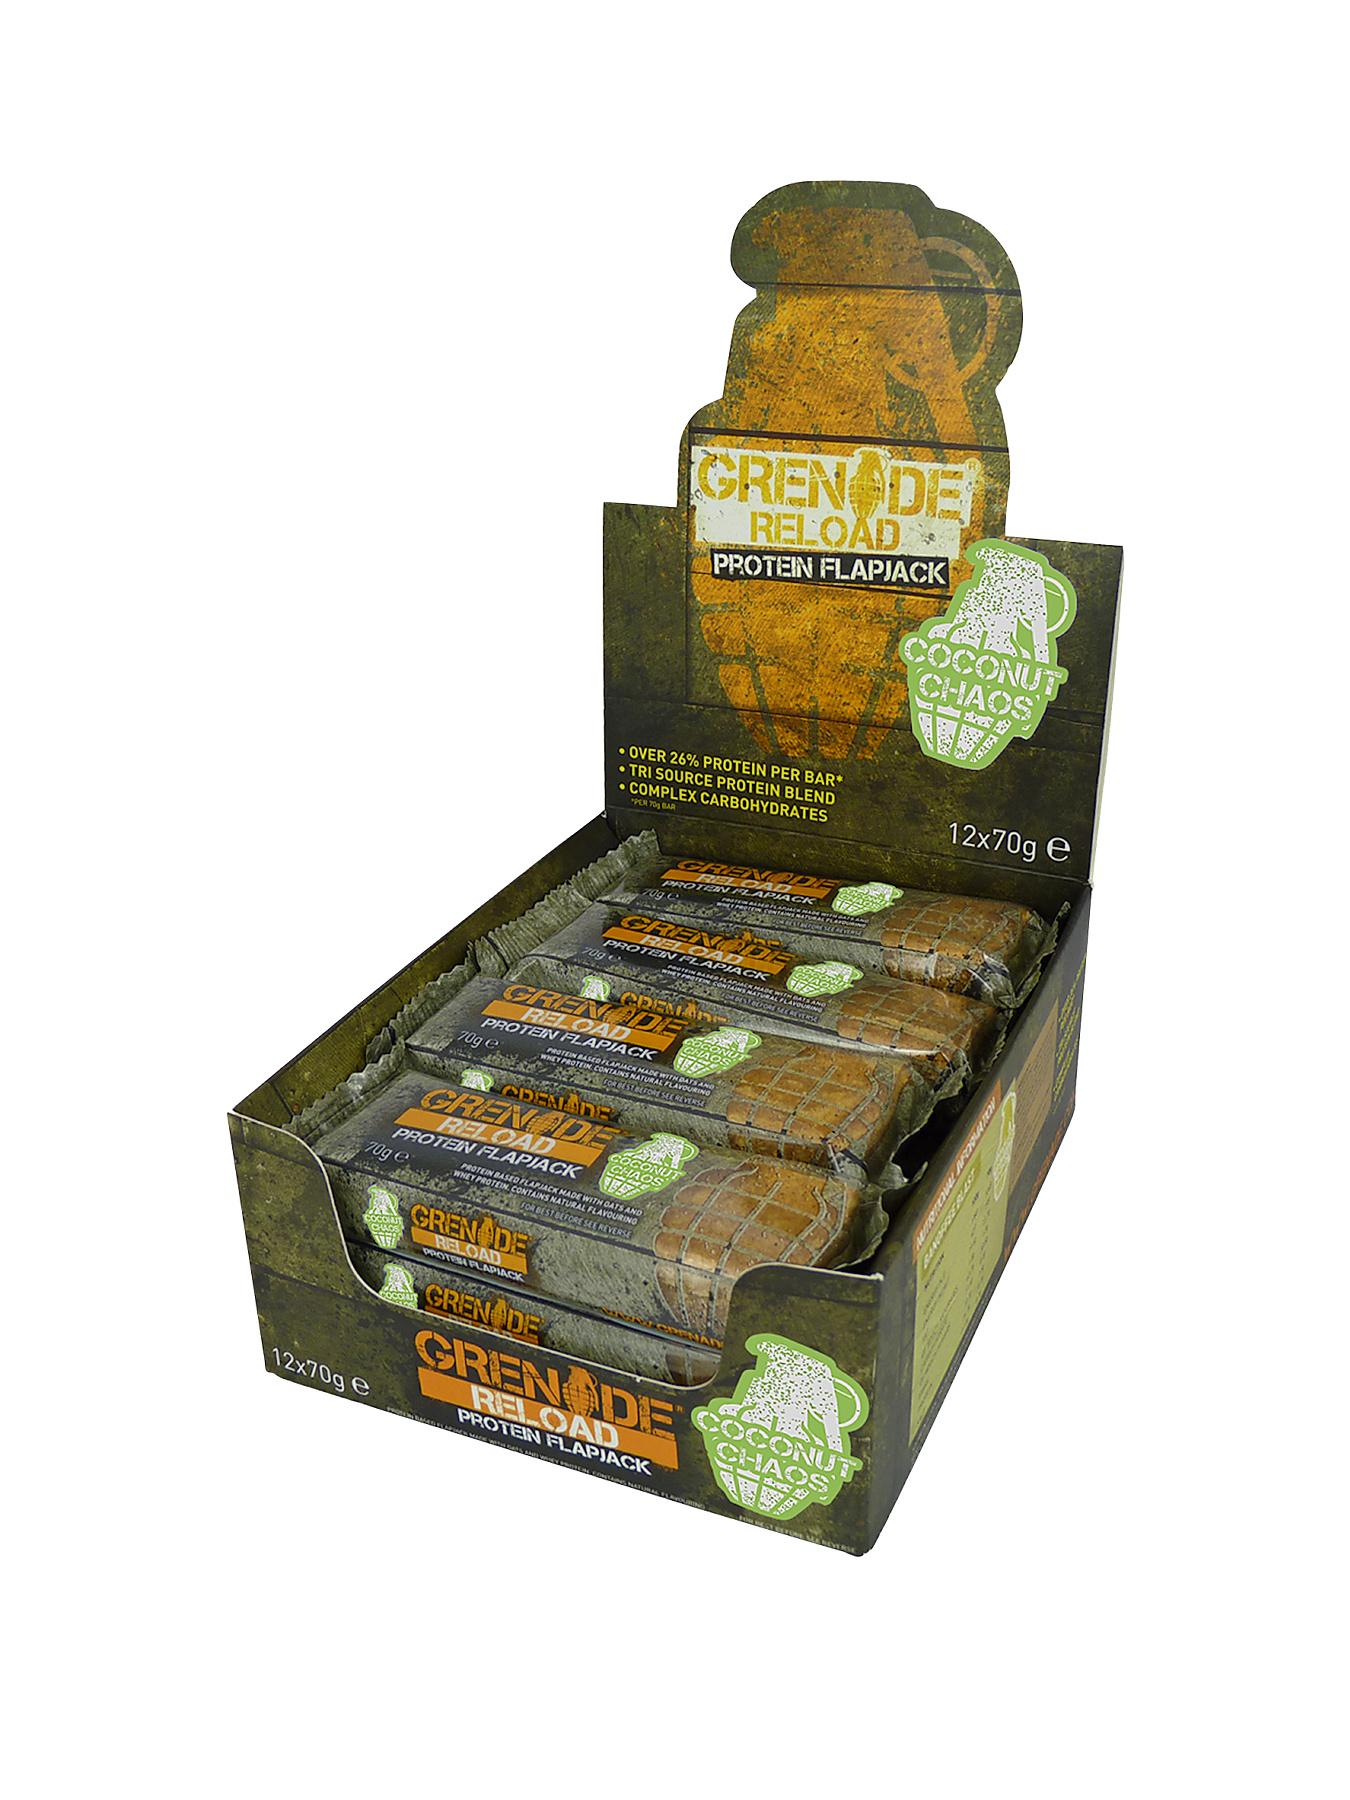 GRENADE Reload Coconut Chaos Protein Flapjack 12 x 70h Bars